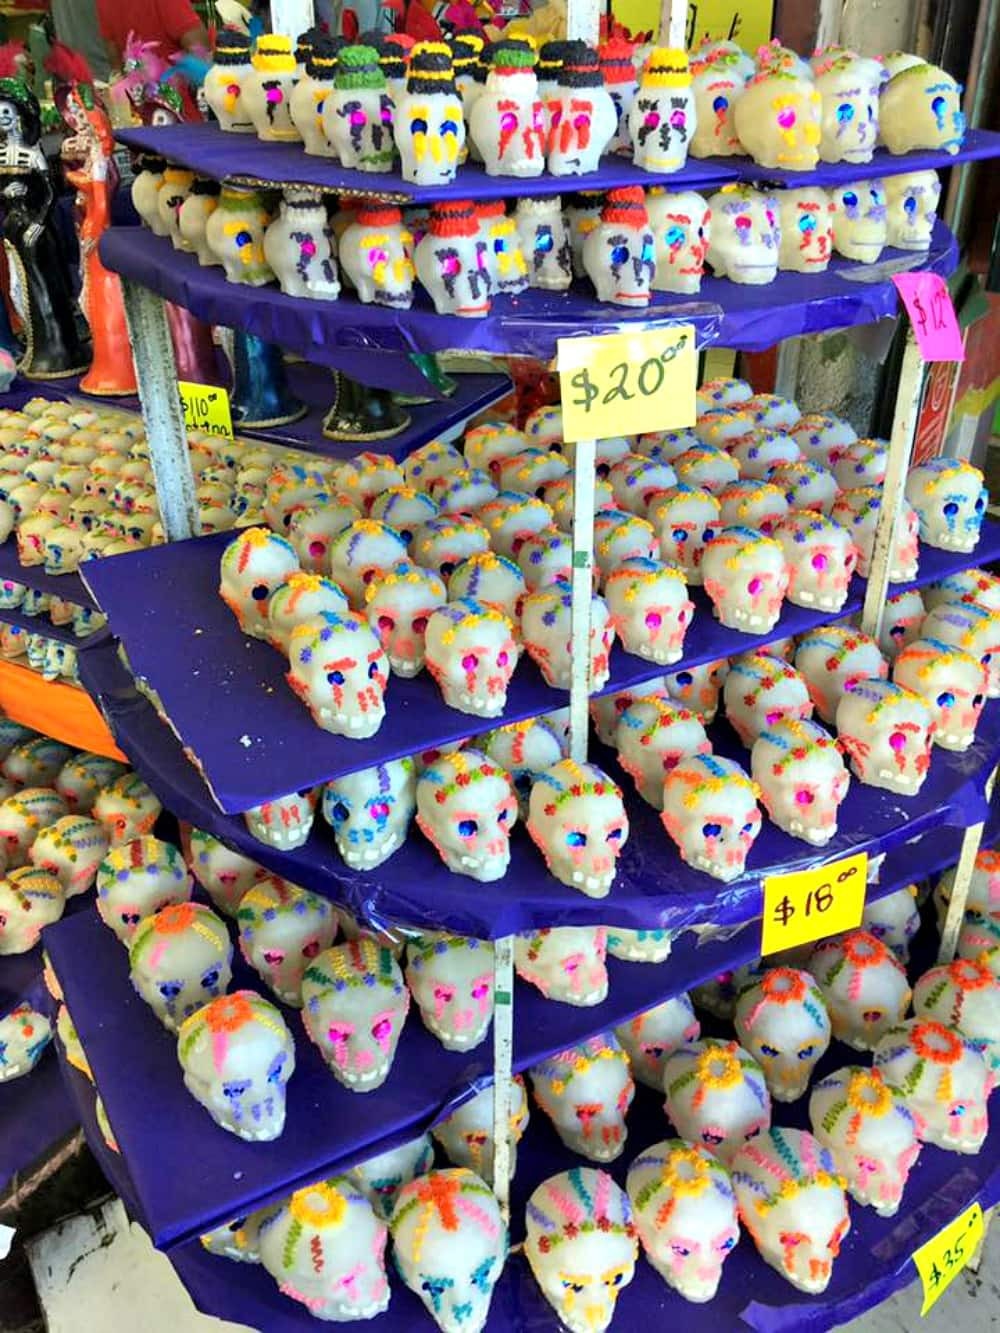 A store display showing the sugar skulls for Dia de los Muertos.